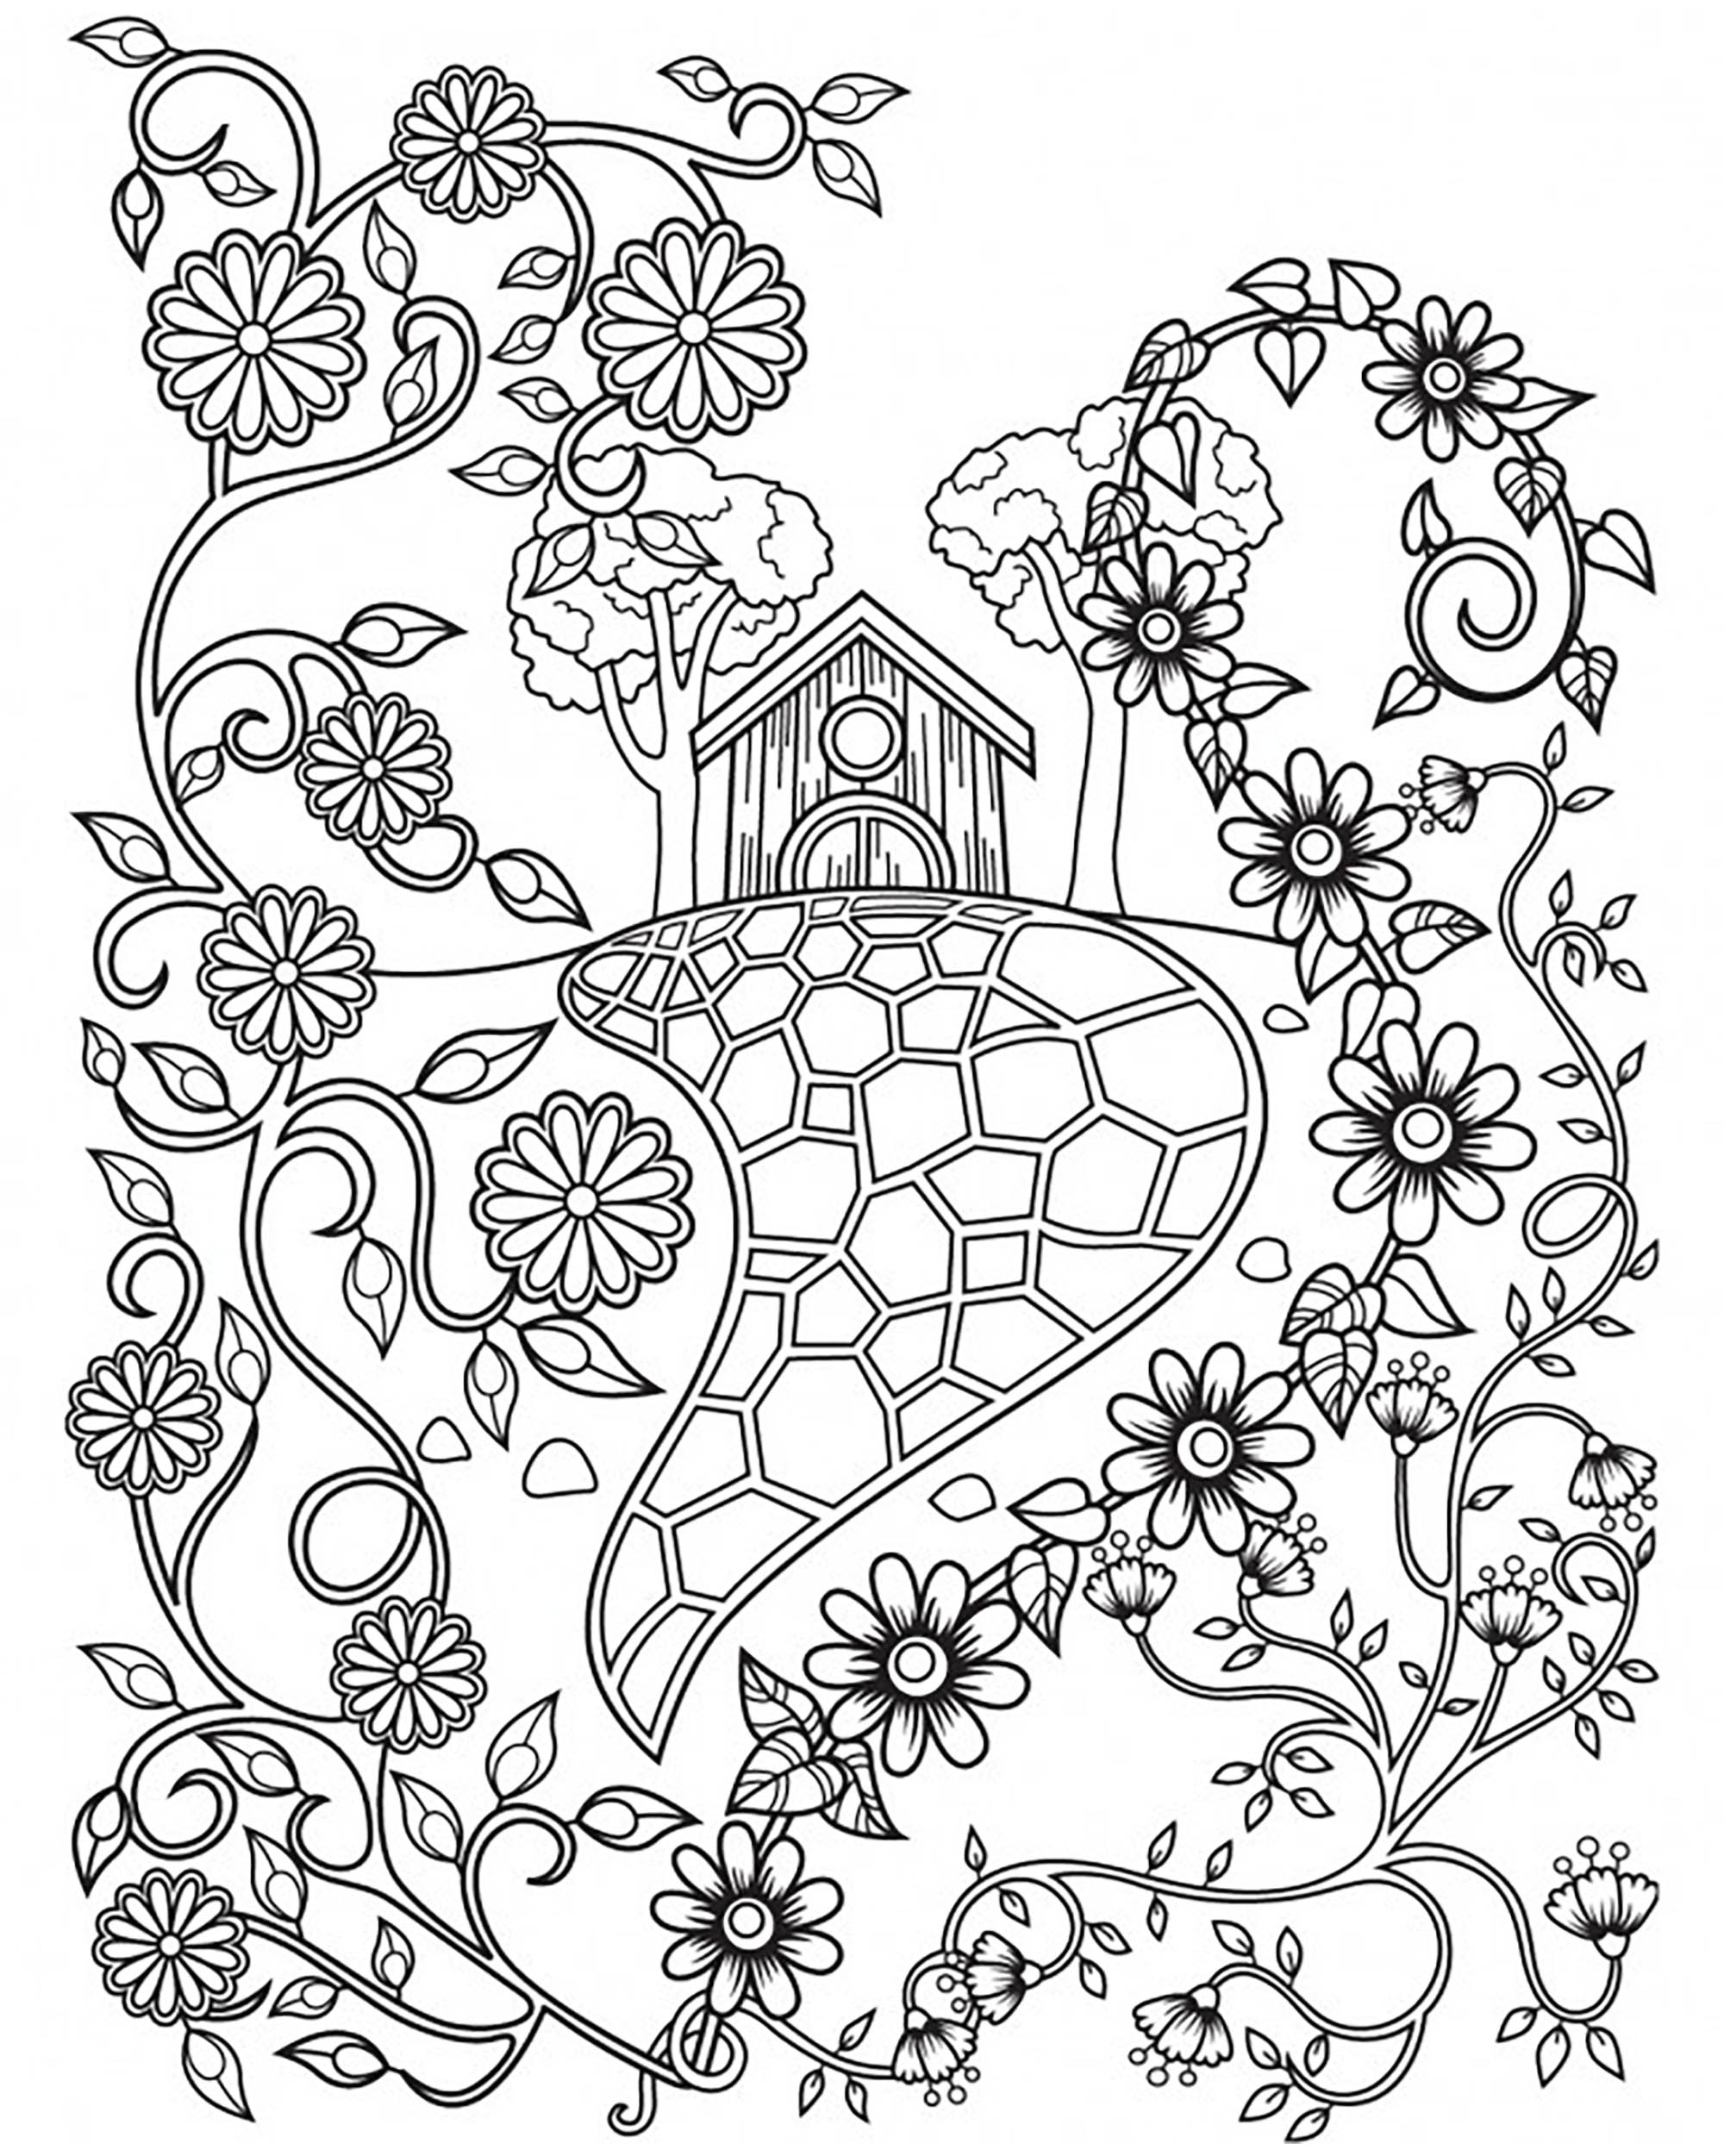 illustration inspired by some fairy tales with a house nearly hidden behind a flowers field coloring page offered by cinthia